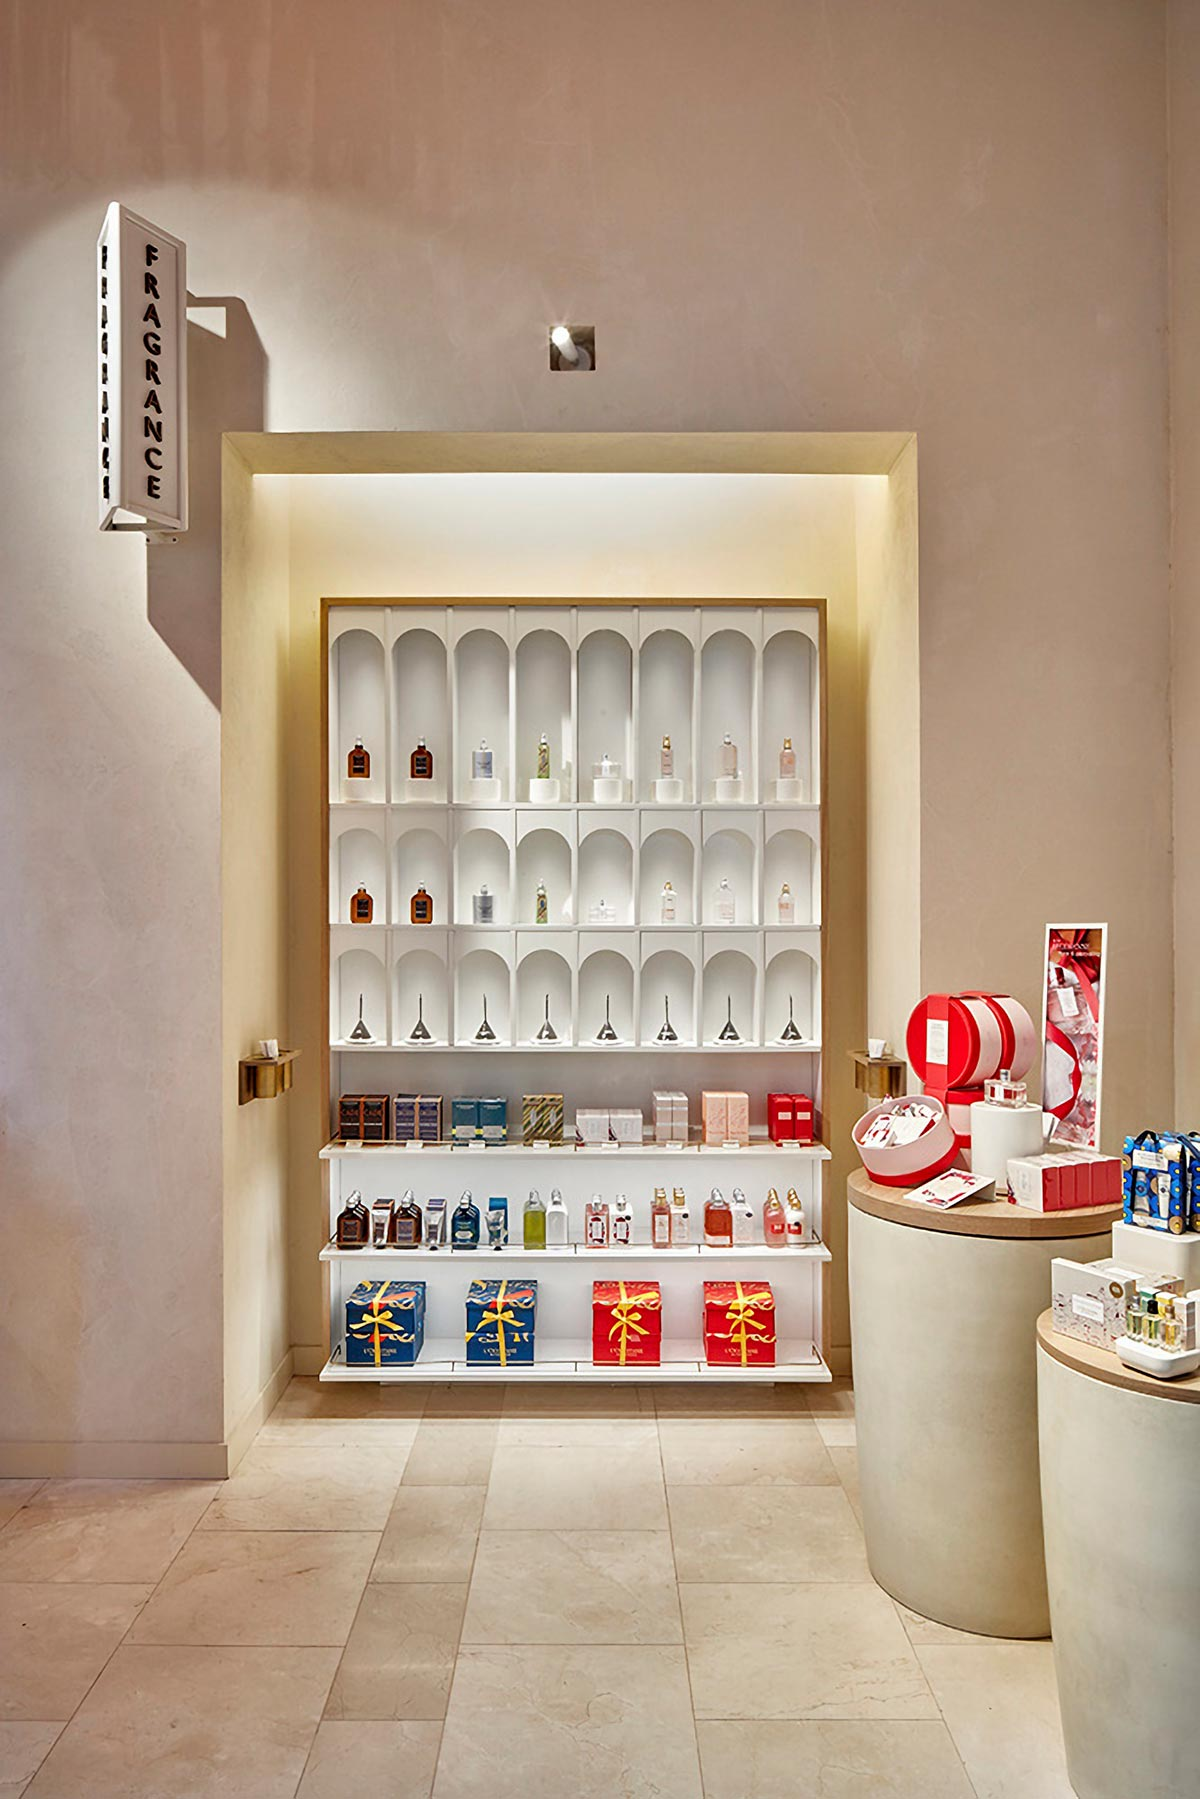 An experiential community store and flagship location in New York City's L'Occitane Flatiron neighborhood